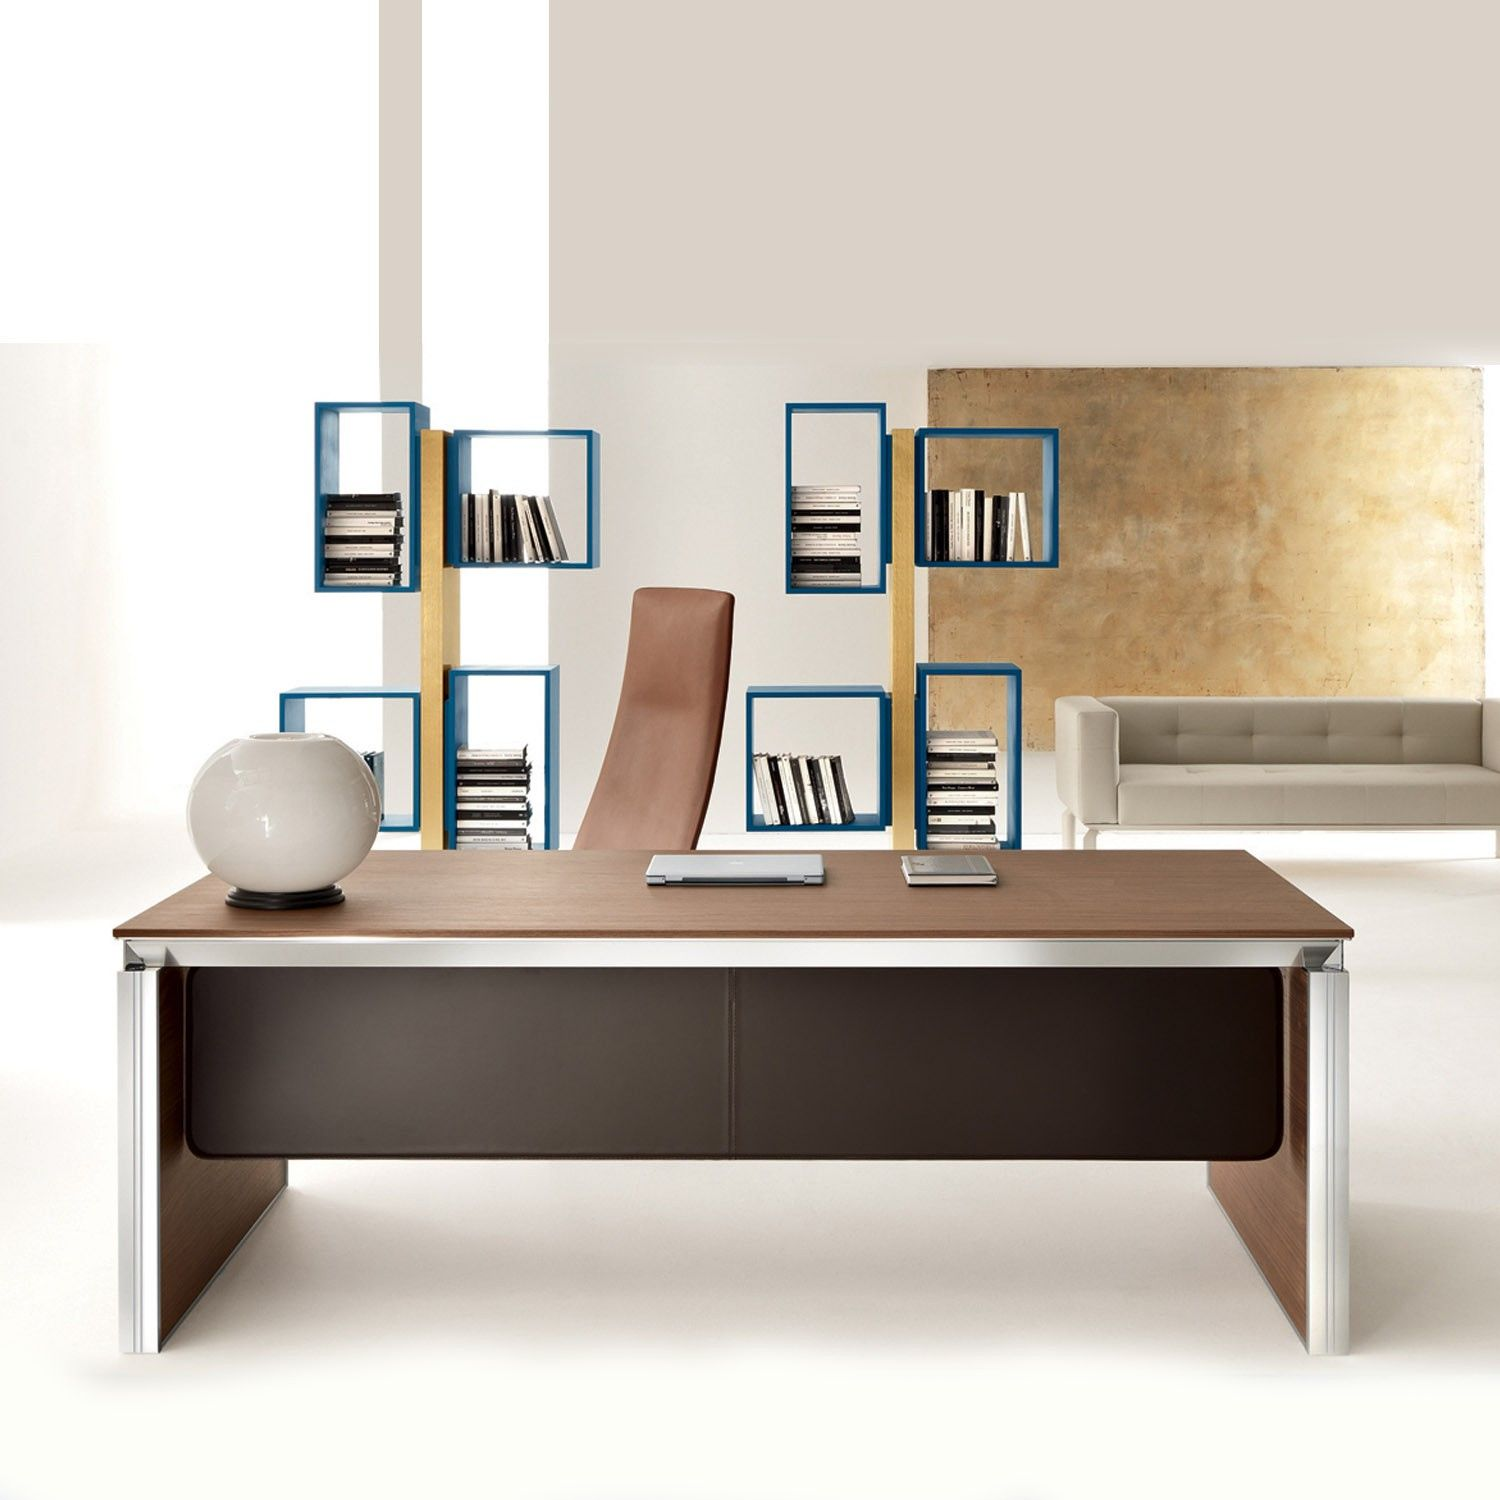 used home office desk. 2019 Custom Built Office Desk - Home Furniture Sets Check More At Http:/ Used E